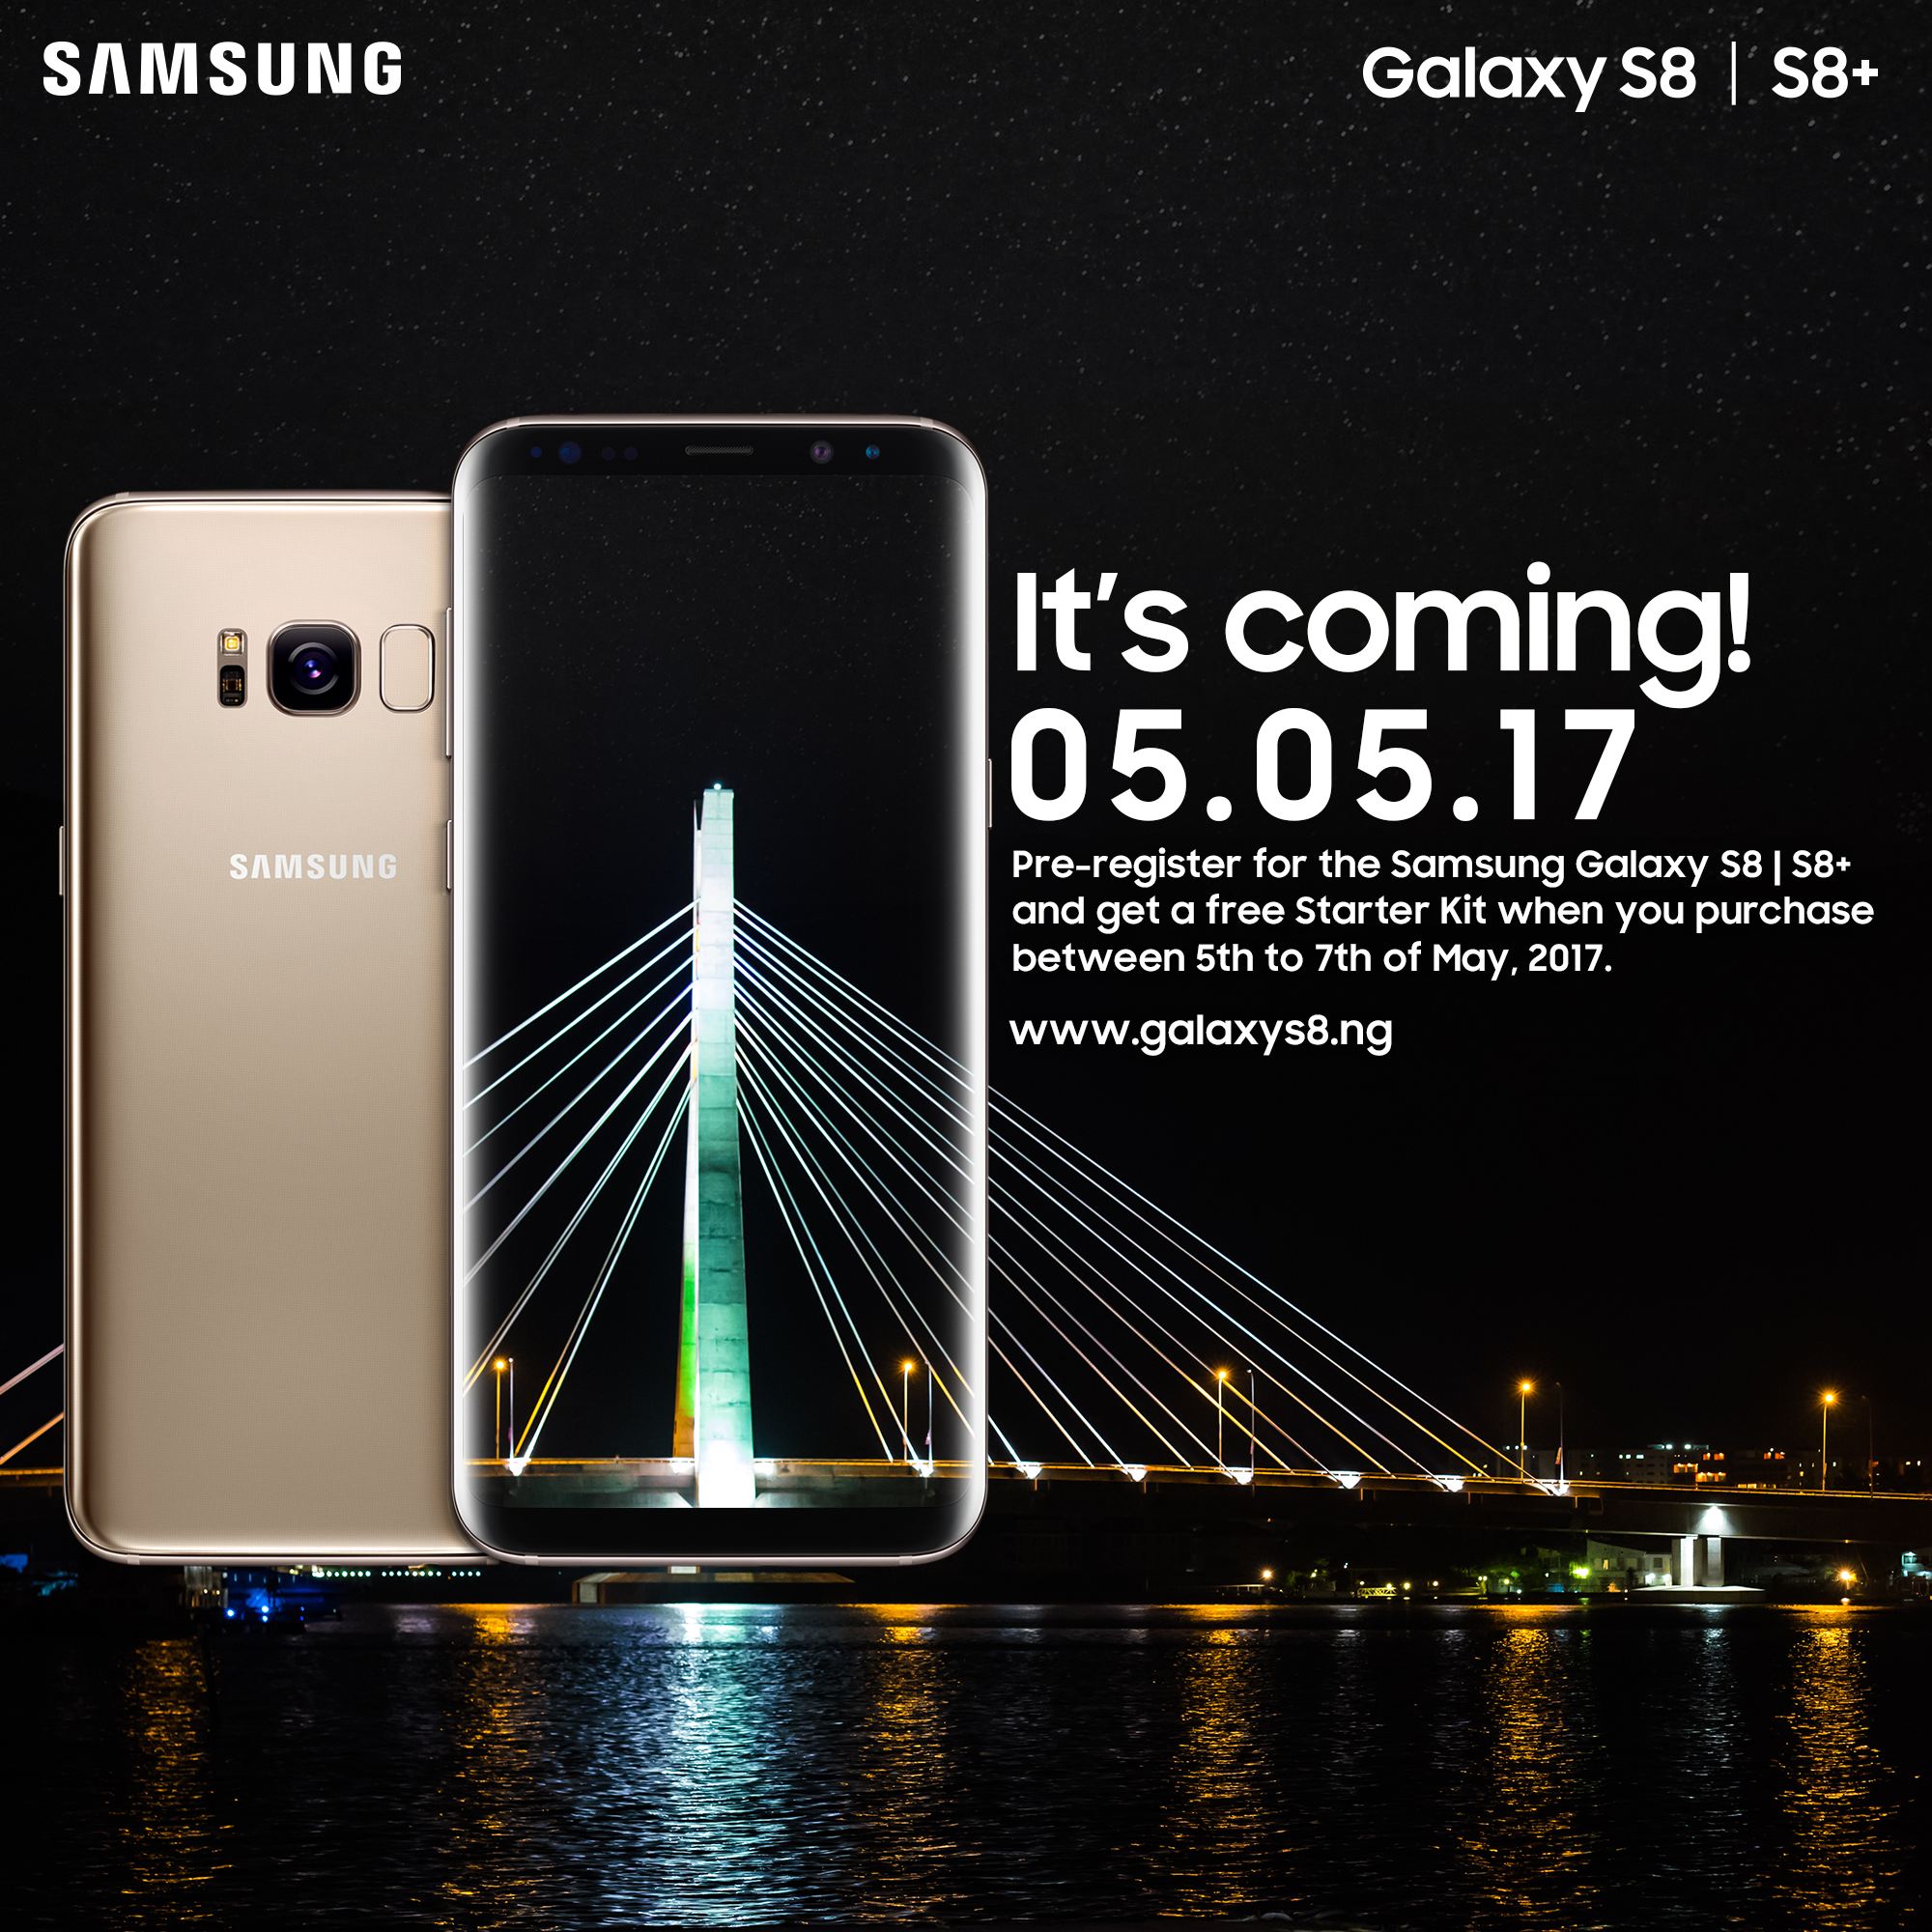 The Samsung Galaxy S8 and S8+ are now available for pre-registration in Nigeria